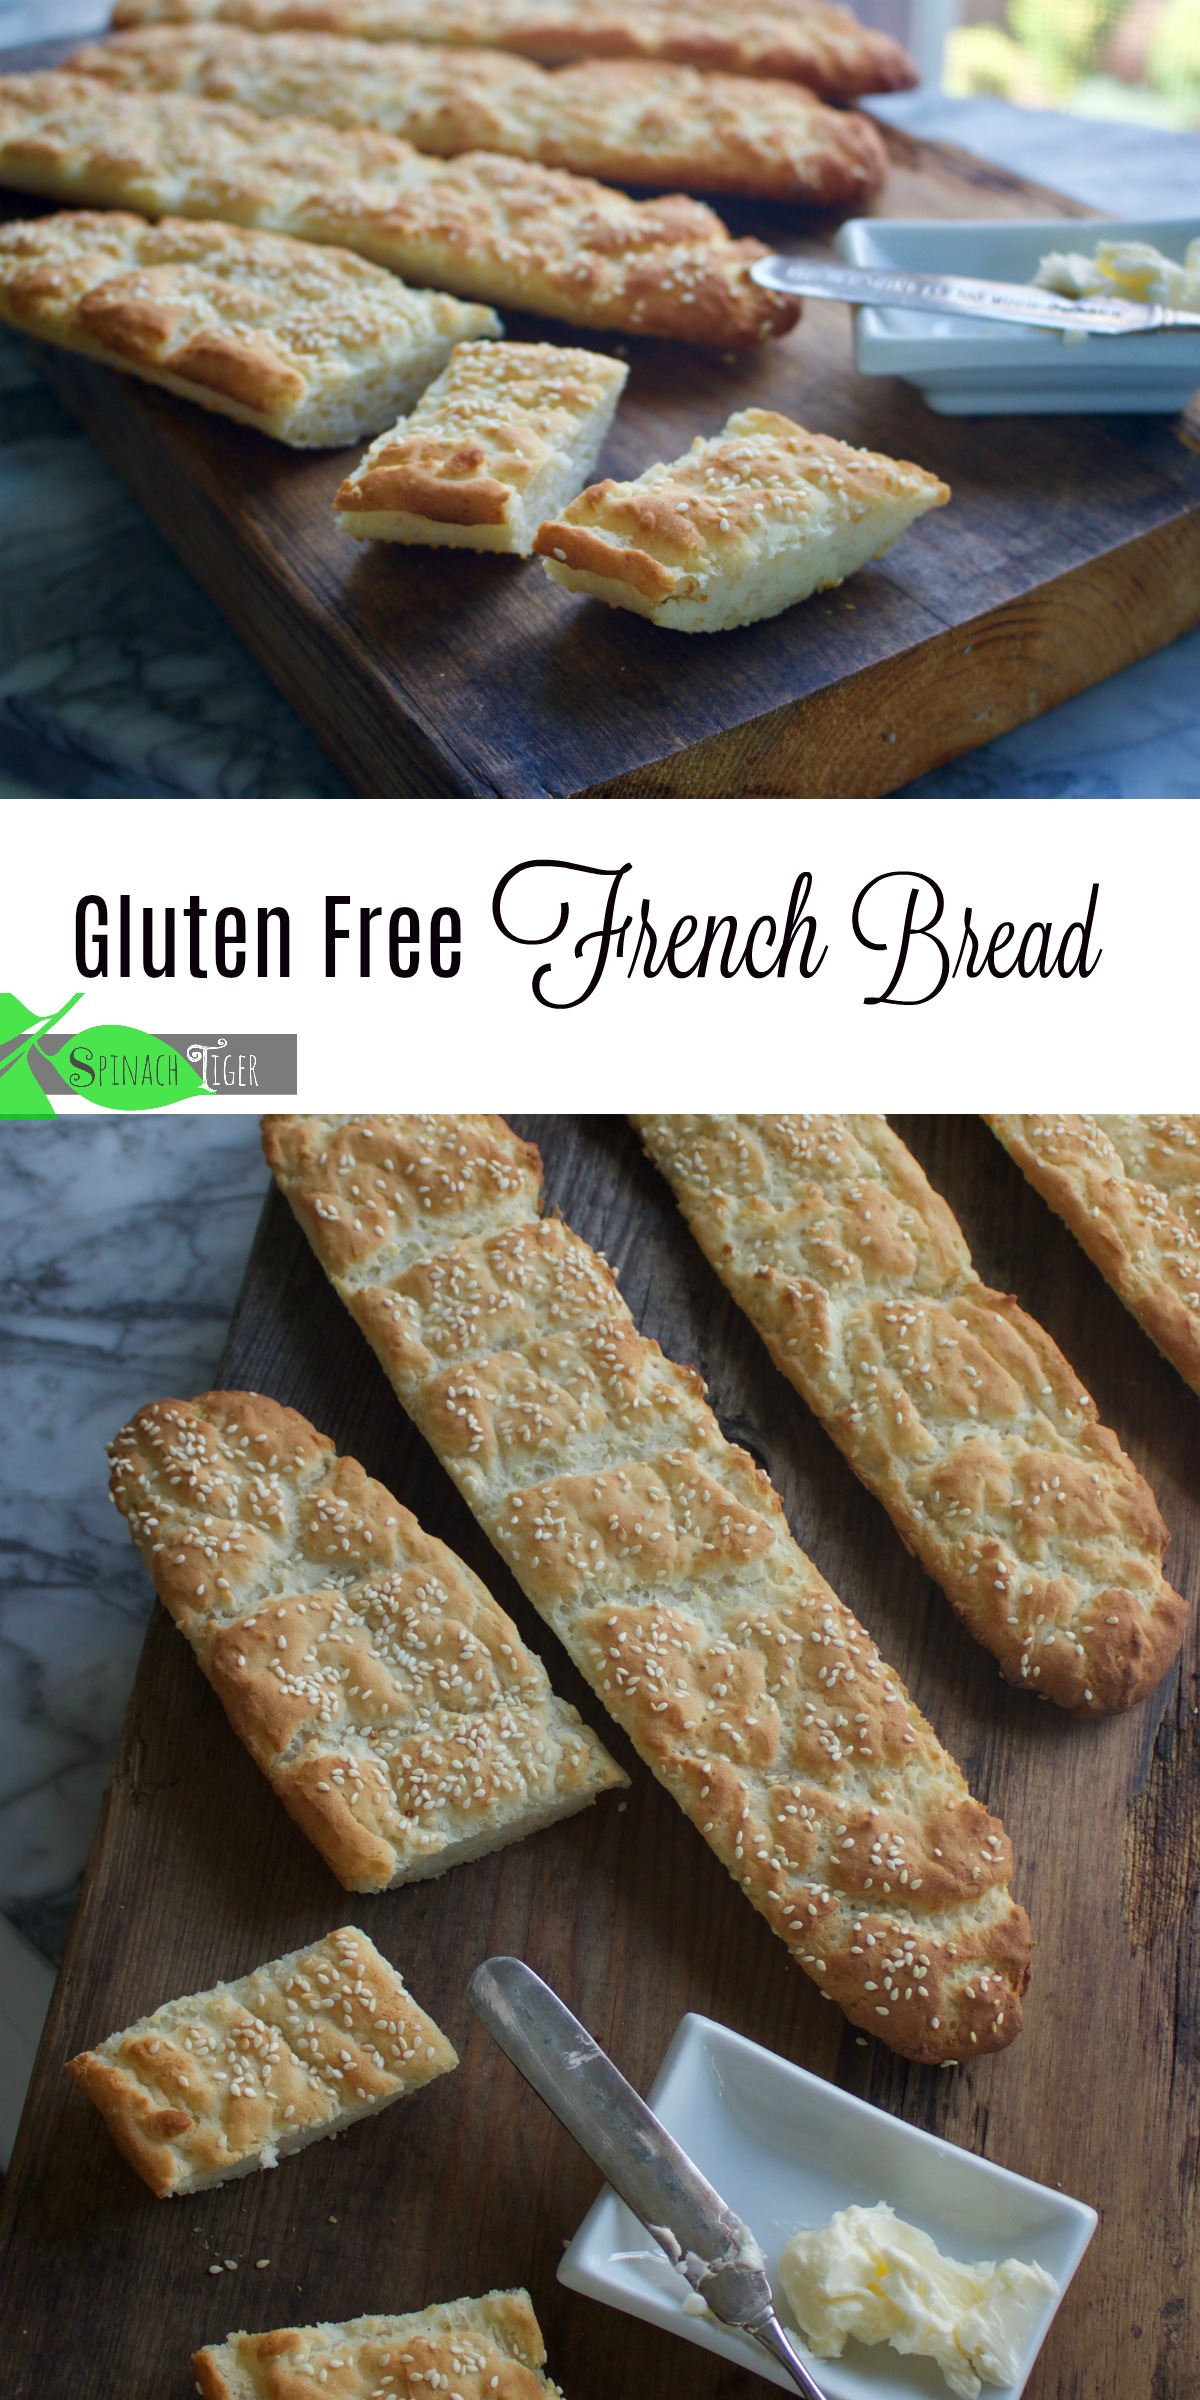 Gluten Free French Bread from Spinach Tiger